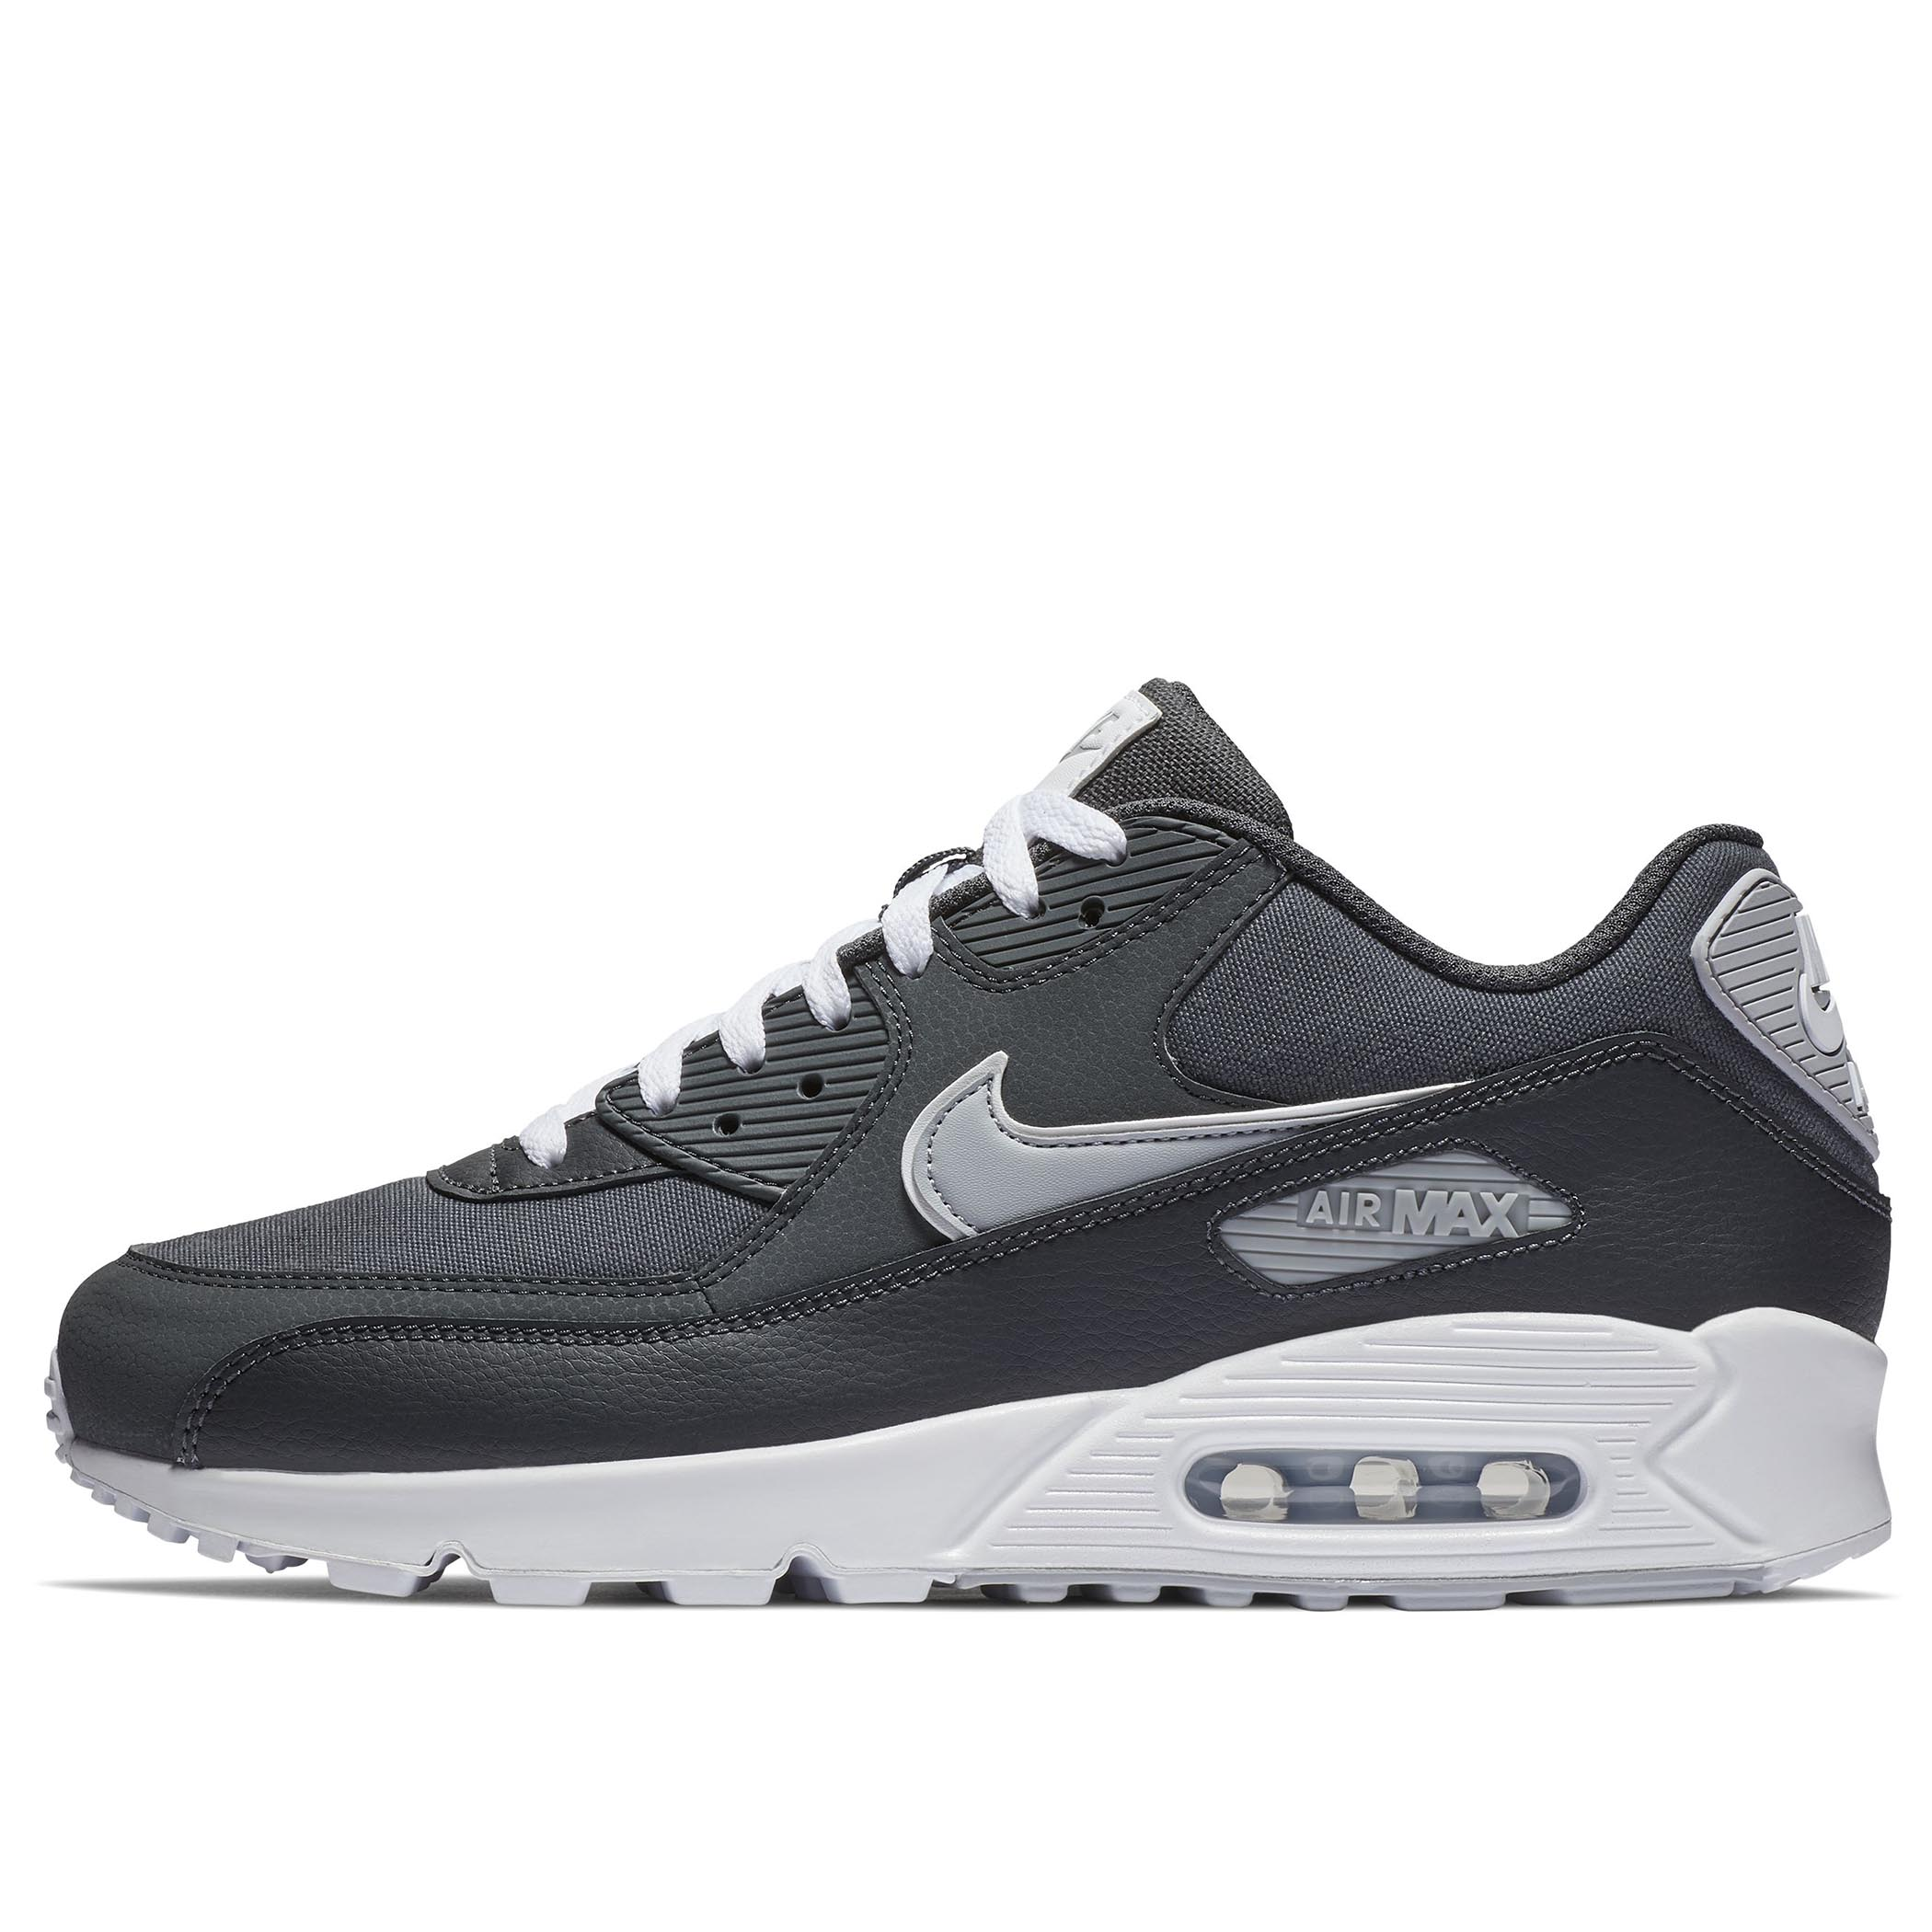 2b9f84bf Мужские кроссовки Nike Air Max 90 Essential Anthracite/Wolf Grey-White -  фото 1